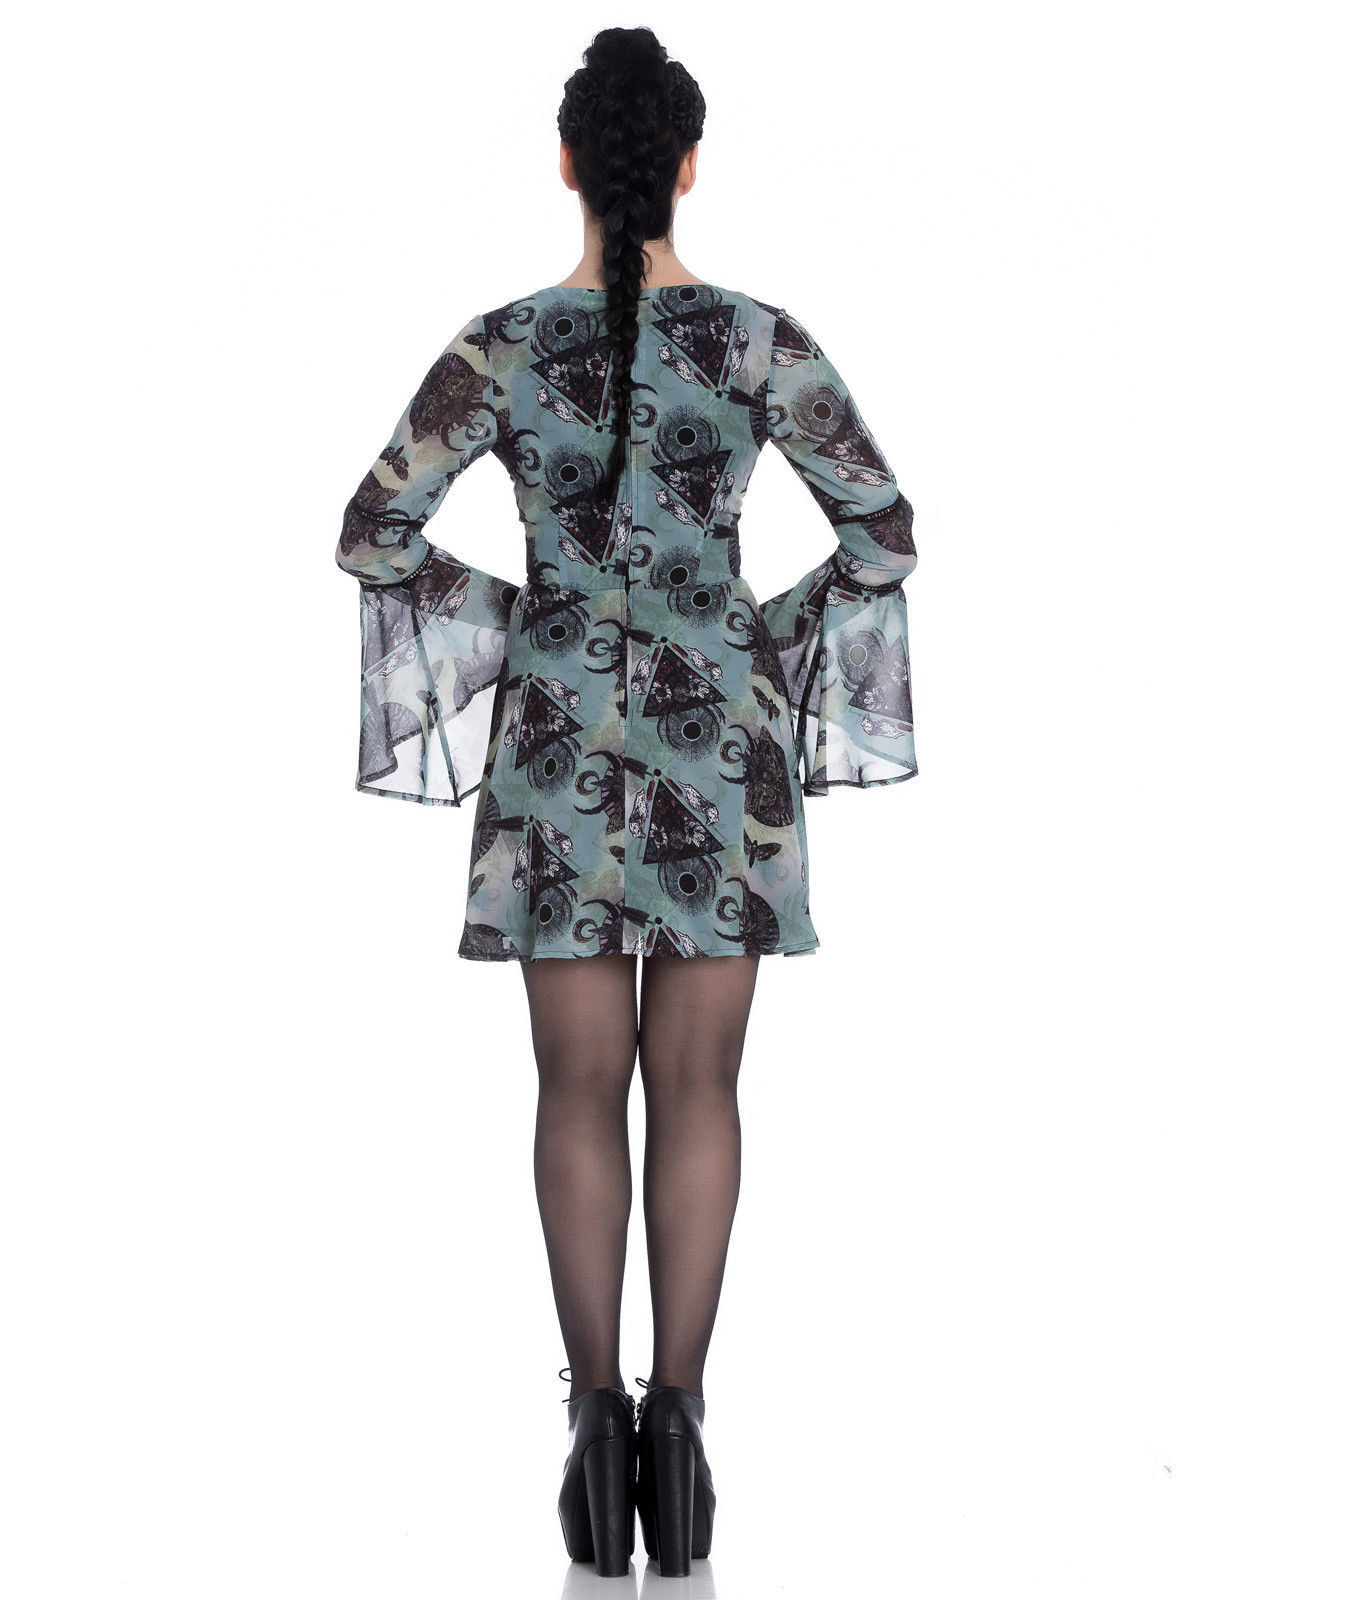 Hell-Bunny-Alchemy-Goth-Floaty-Witch-Mini-Dress-AFTER-DEATH-Teal-Green-All-Sizes thumbnail 5